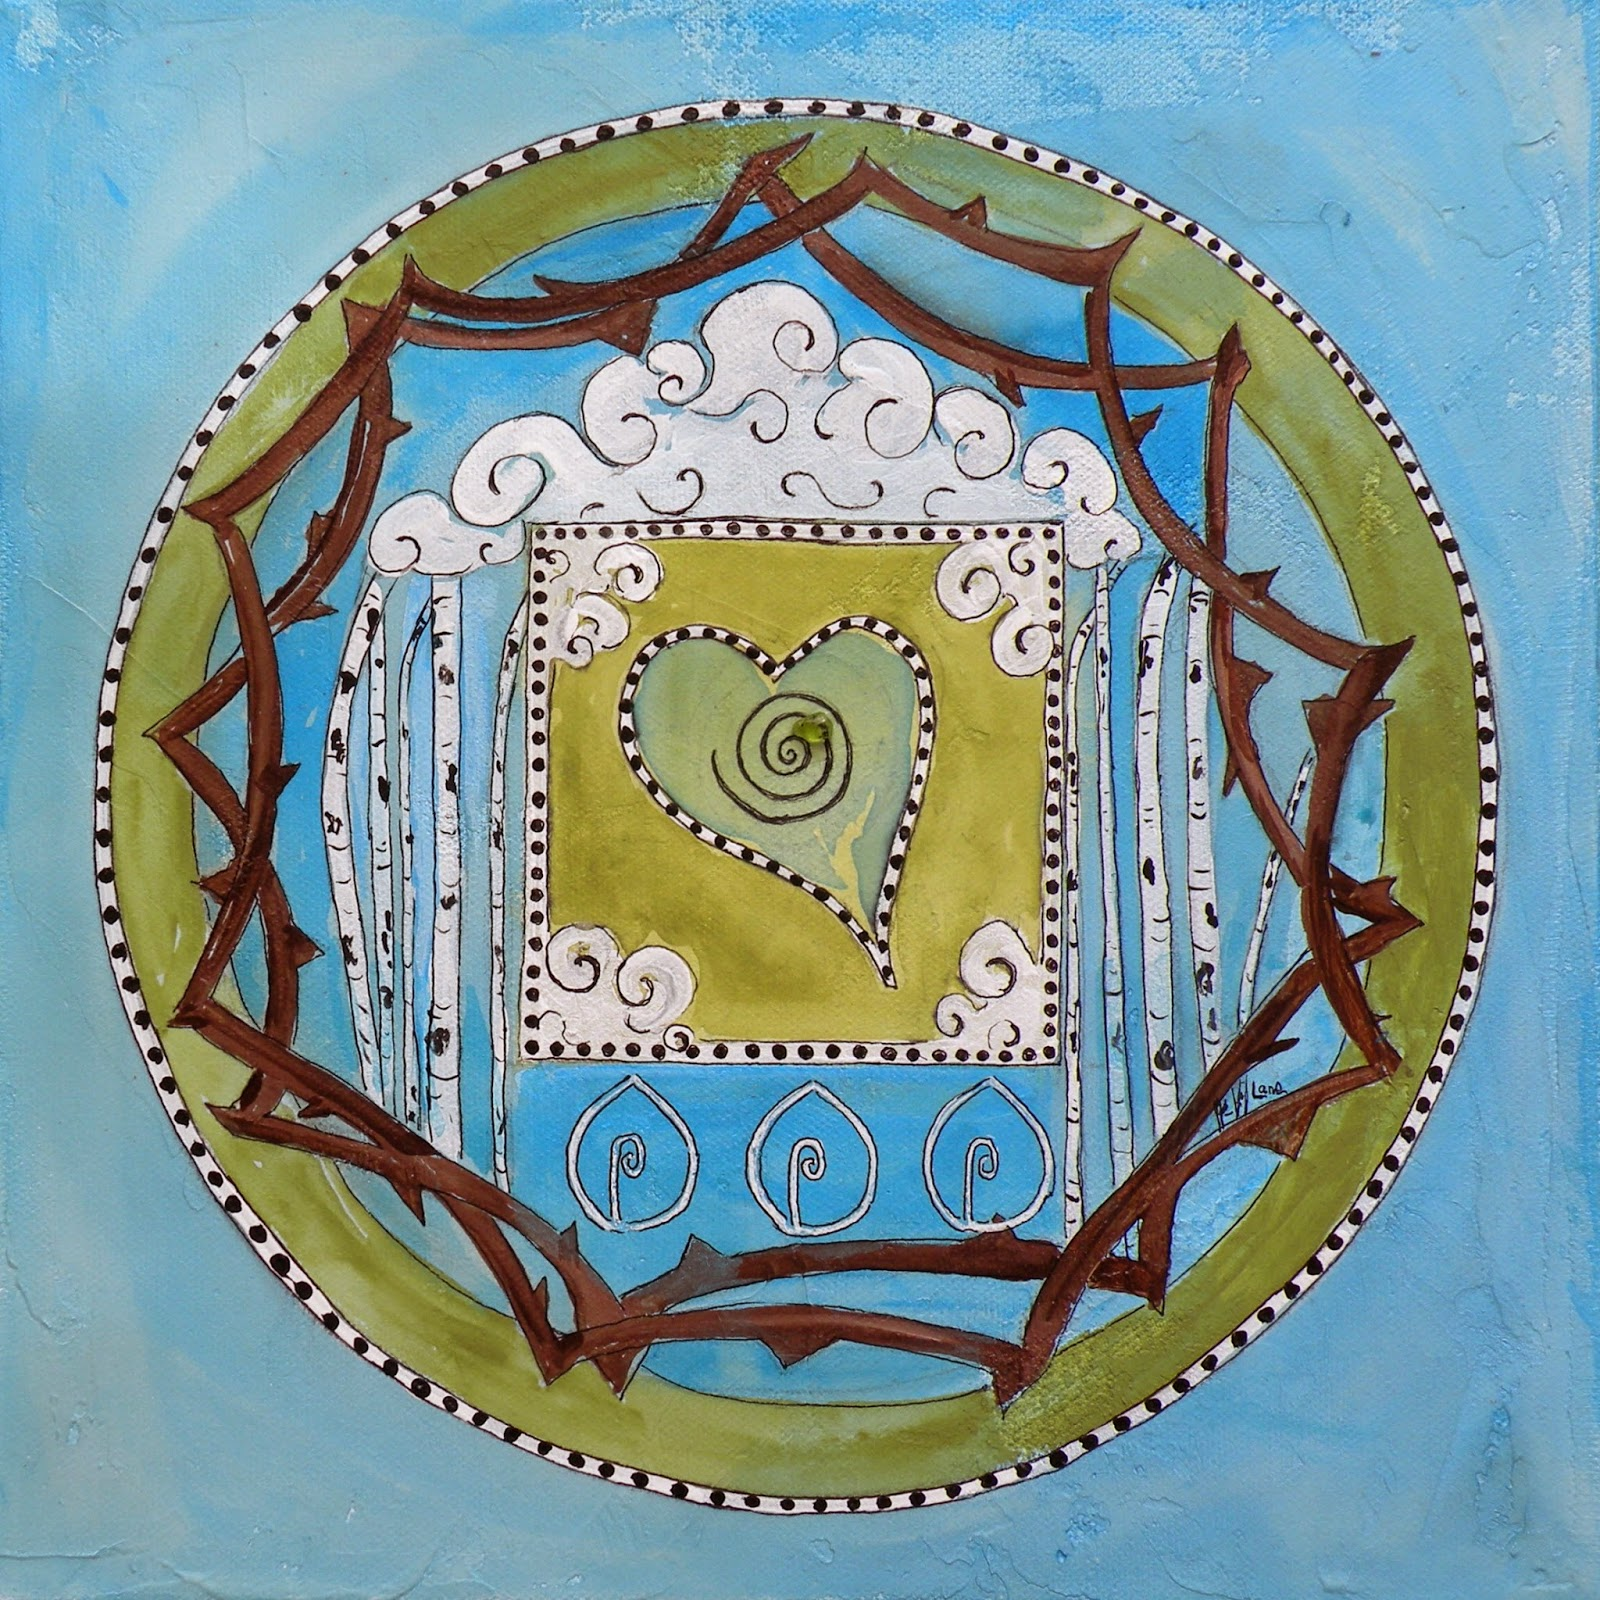 Art for life my personal mandala saundra lane galloway - Mandalas signification formes ...